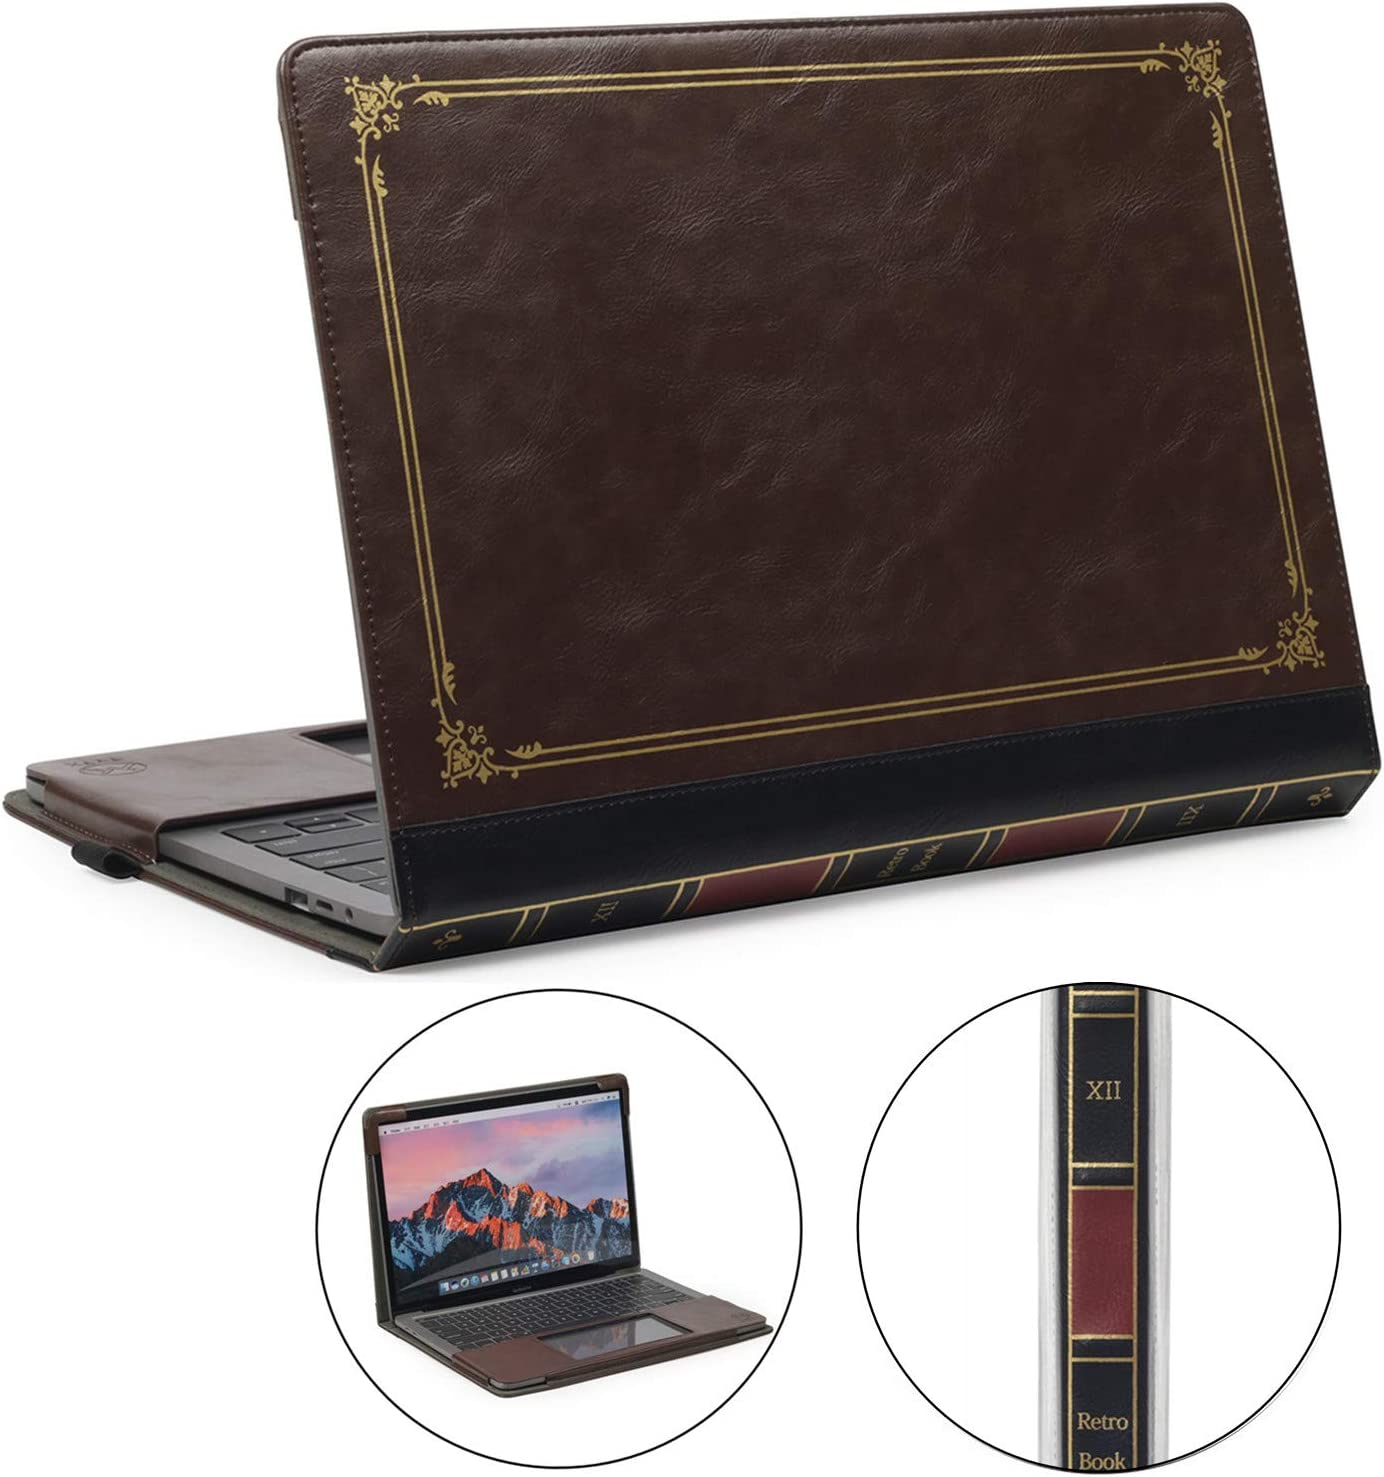 """TYTX MacBook Pro Leather Case 13 Inch 2016-2020 (A1989 A1706 A1708 A2159 A2289 A2251) Protective BookBook Folio Cover (New MacBook Pro 13"""", Brown)"""